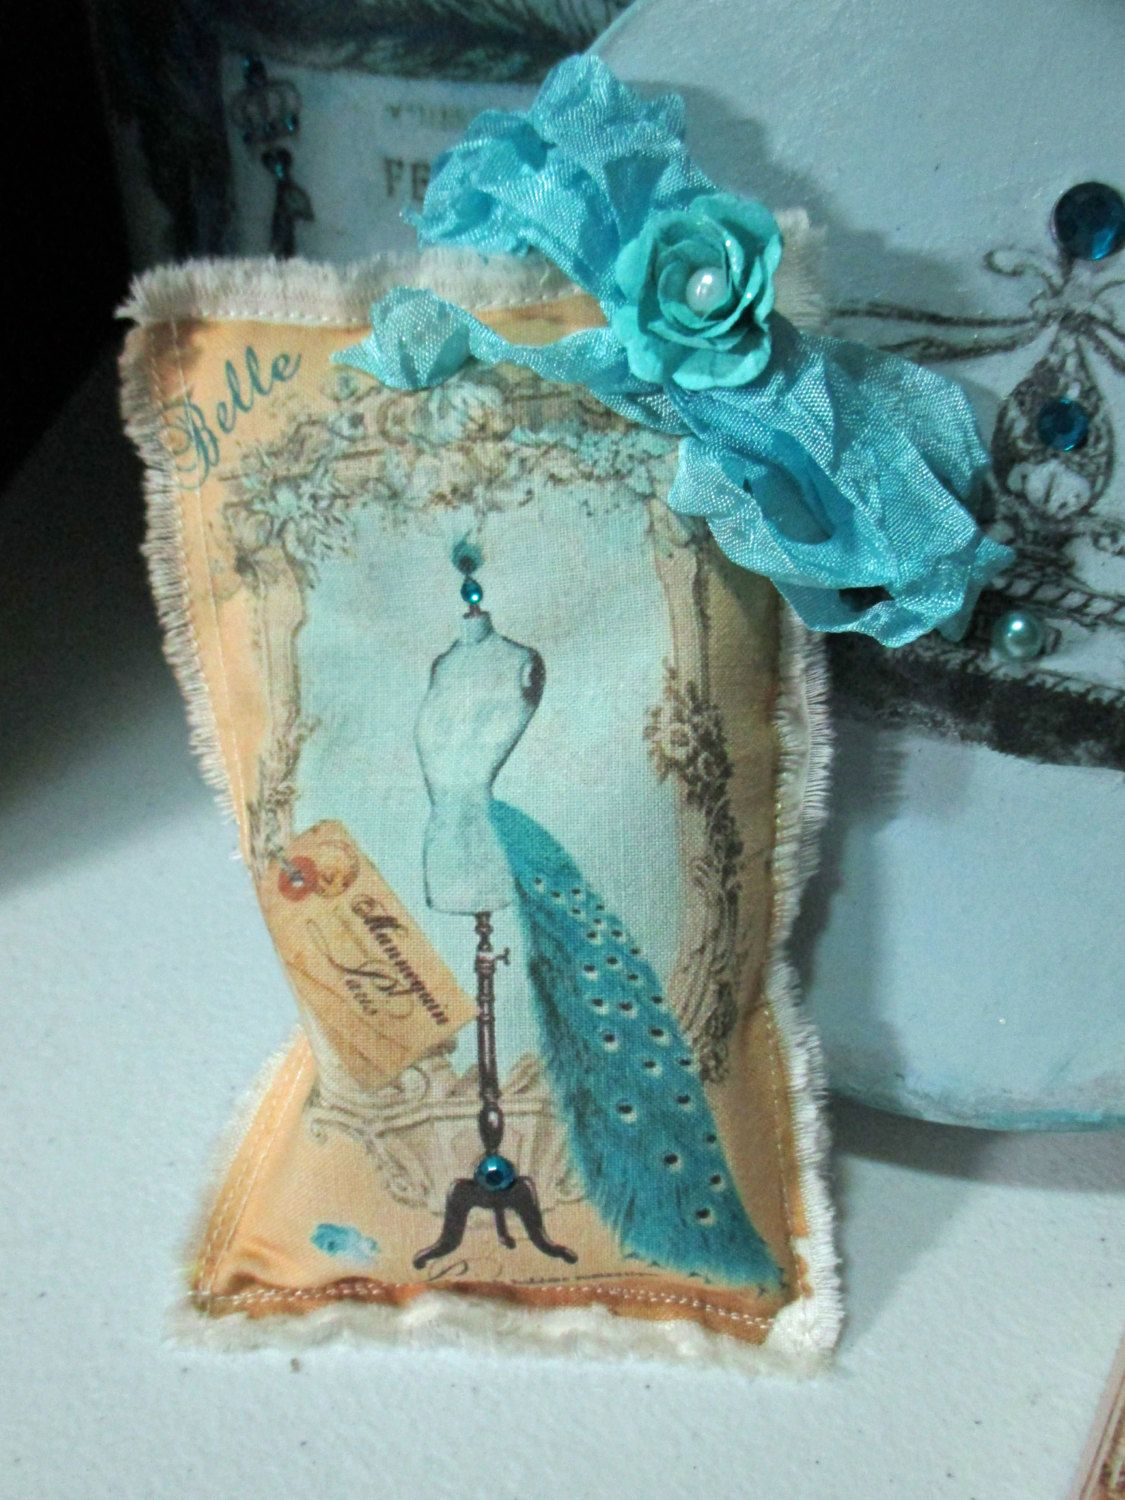 Caribbean Blue Corset Lavender Sachet/Dried Lavender/Drawer Sachet/Personal Gift/Wedding Shower Favor/Party Favor/Bridal Shower Gift by Heartmadelinensgifts on Etsy